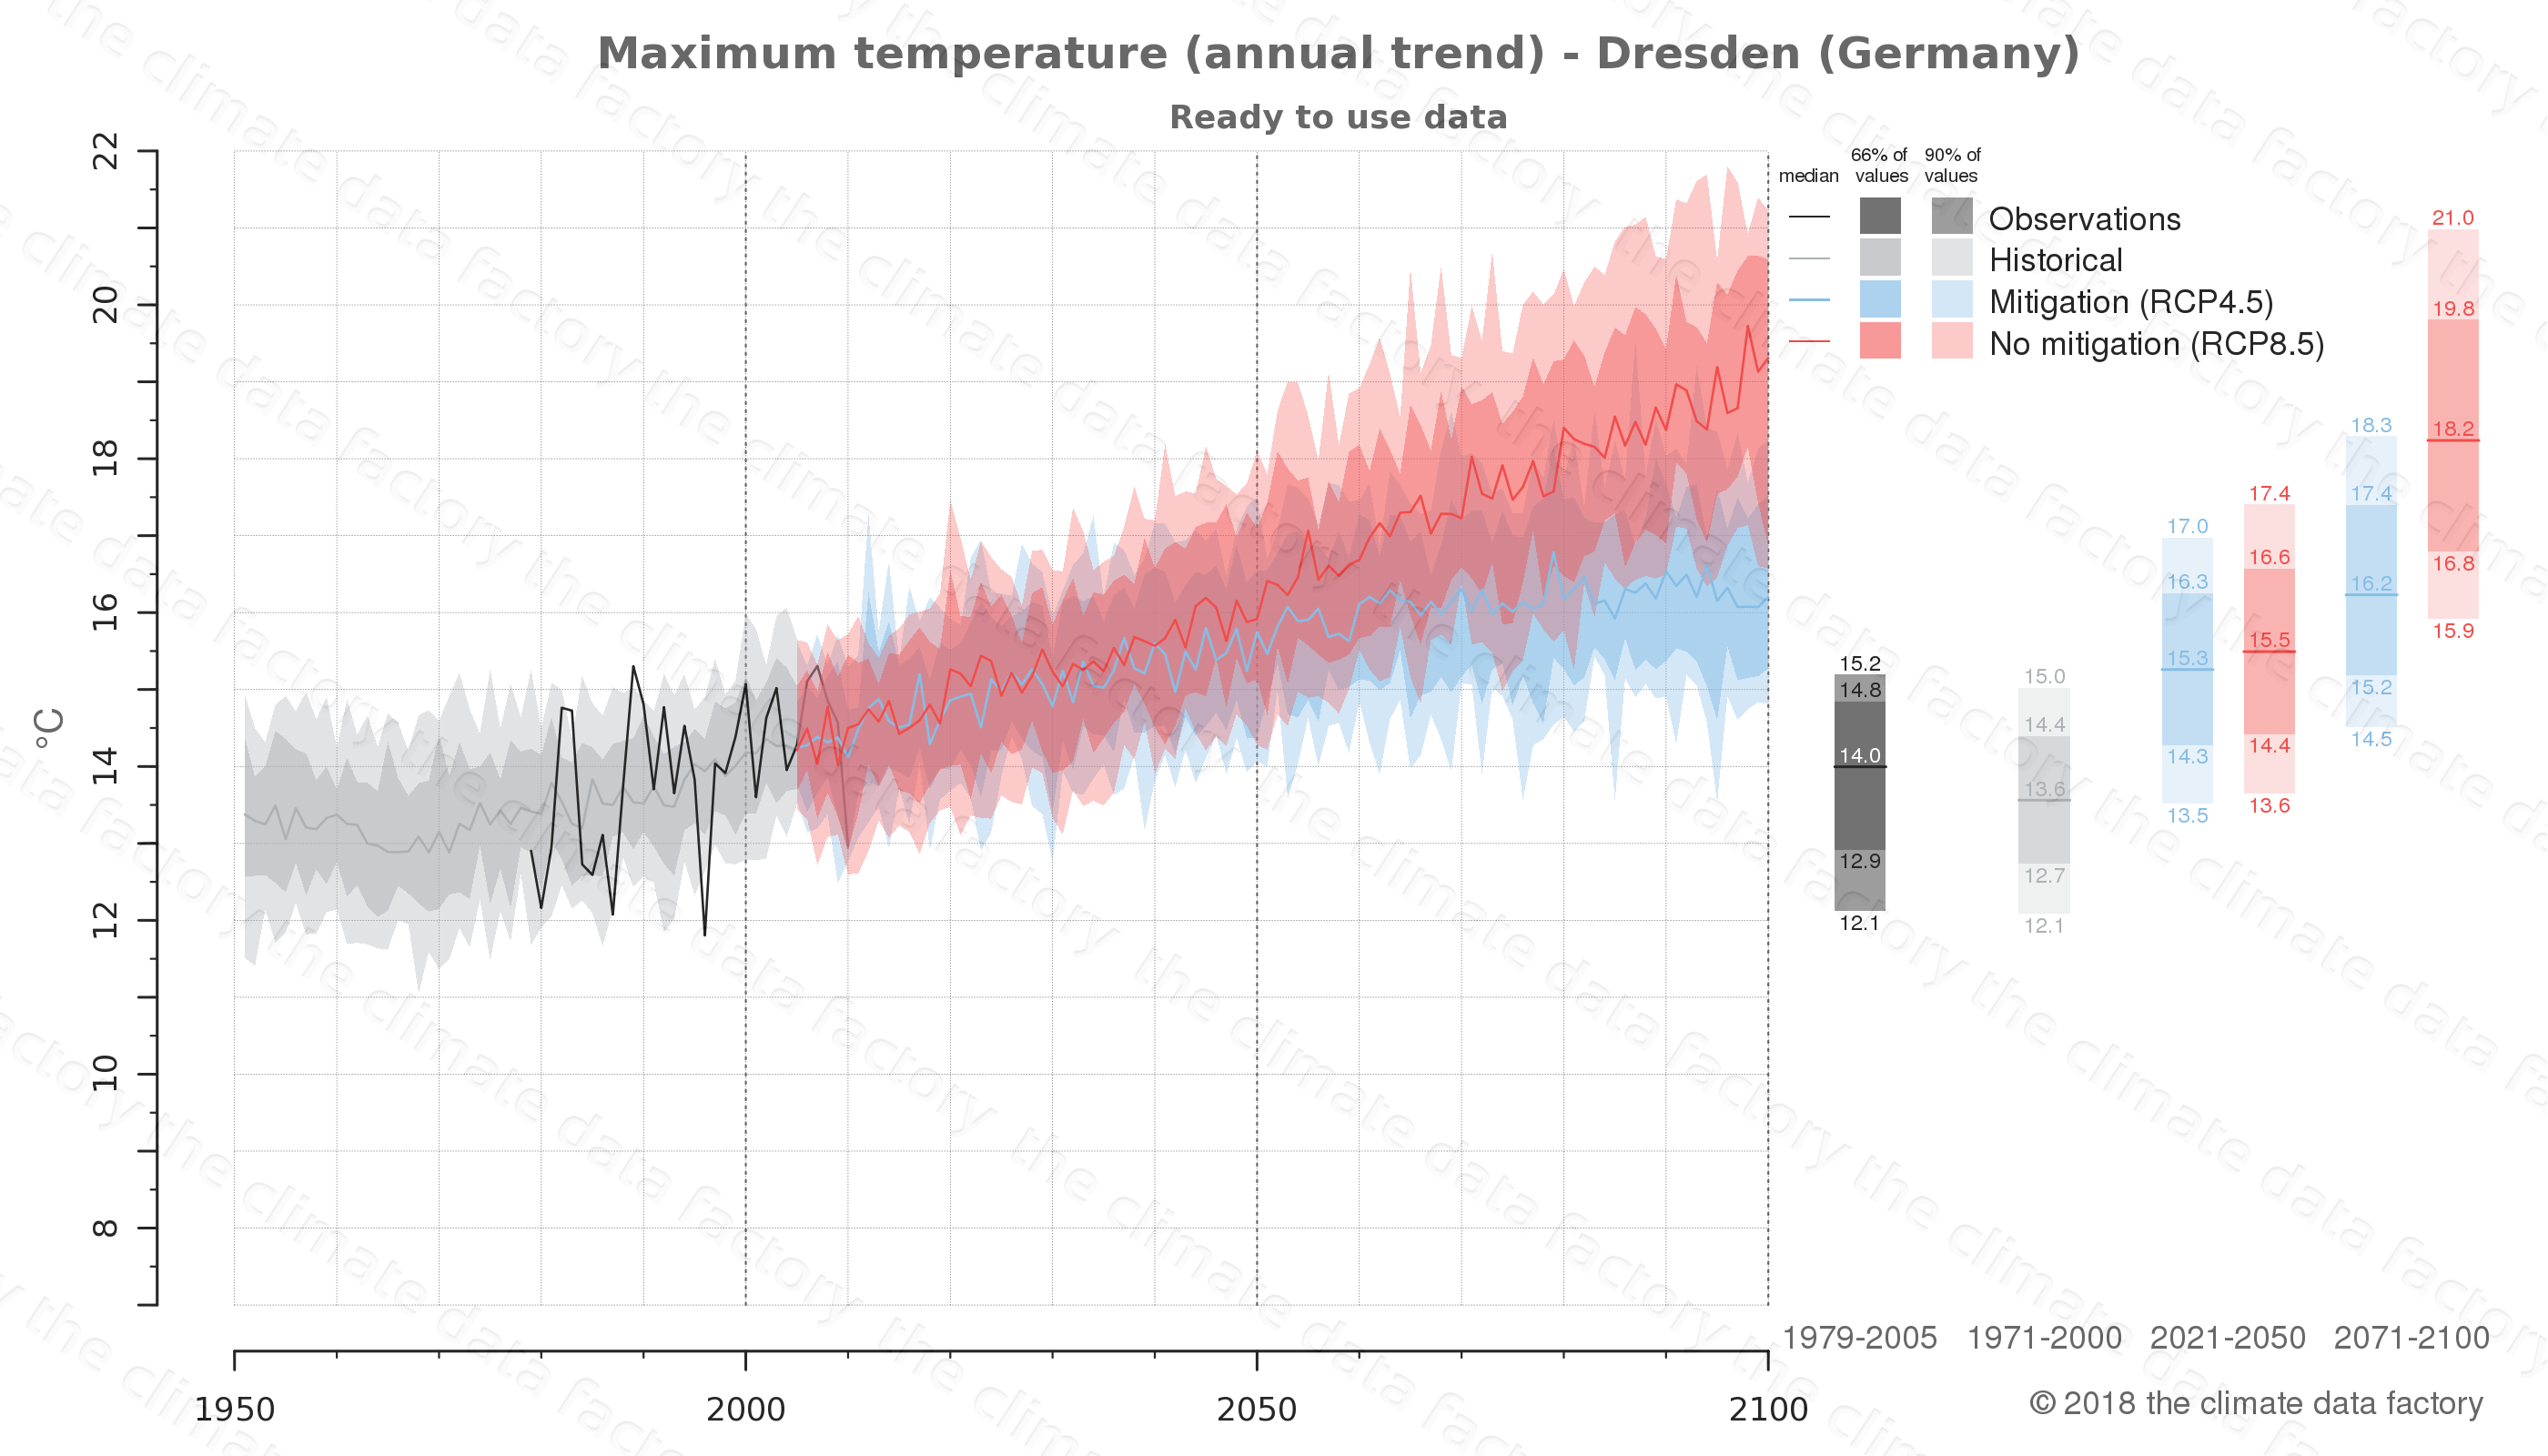 climate change data policy adaptation climate graph city data maximum-temperature dresden germany